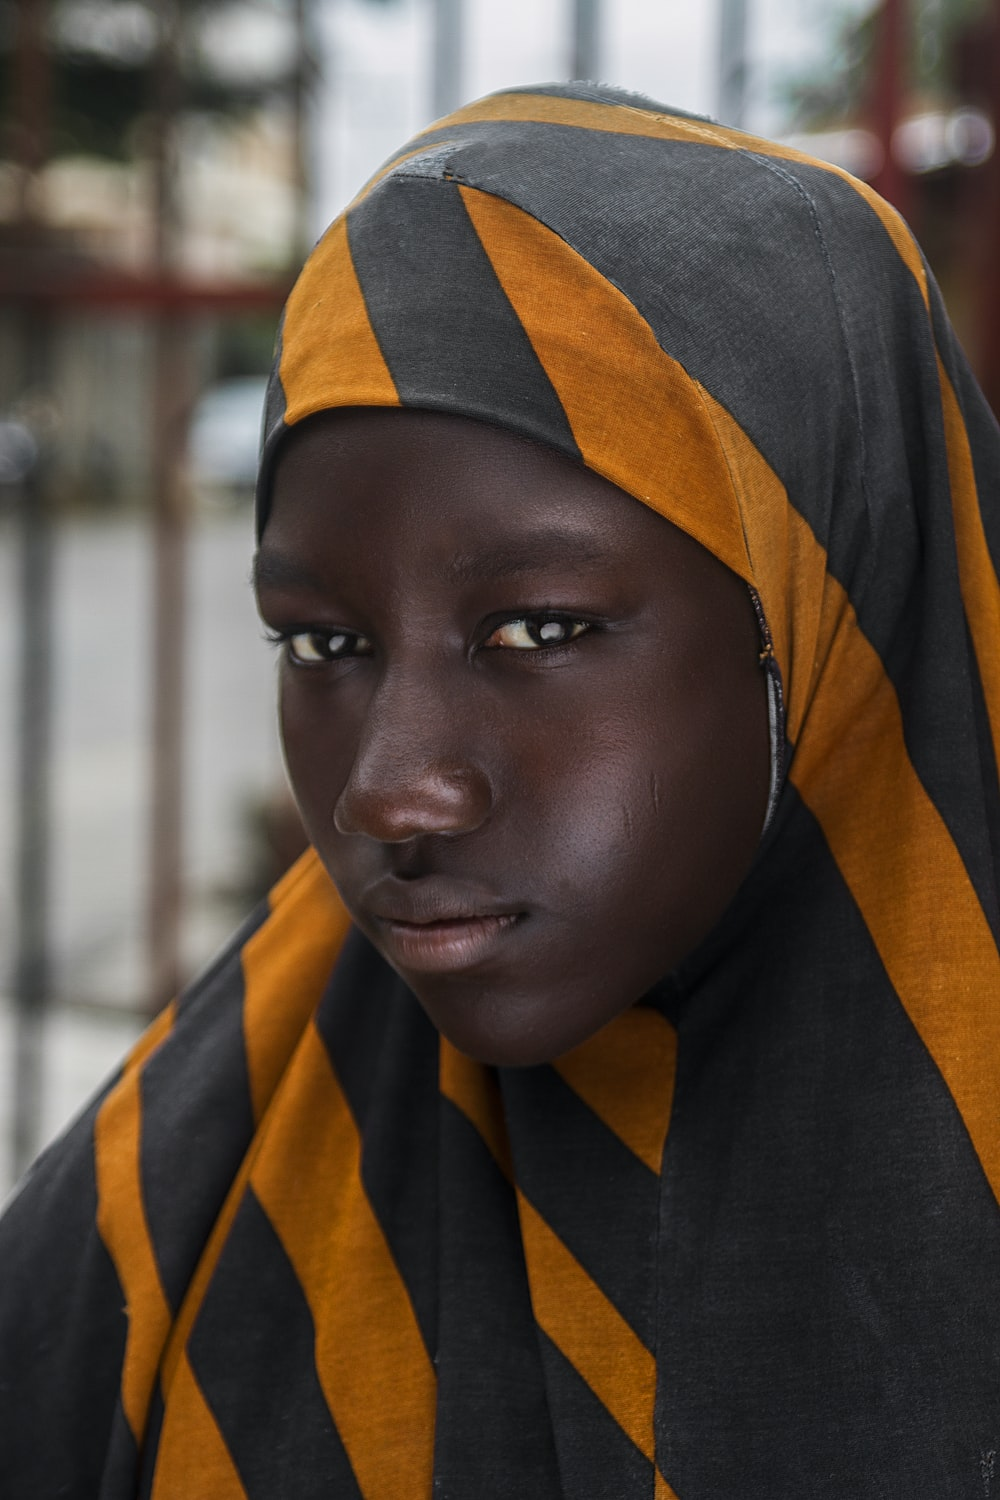 girl in black and orange striped head scarf in selective focus photography